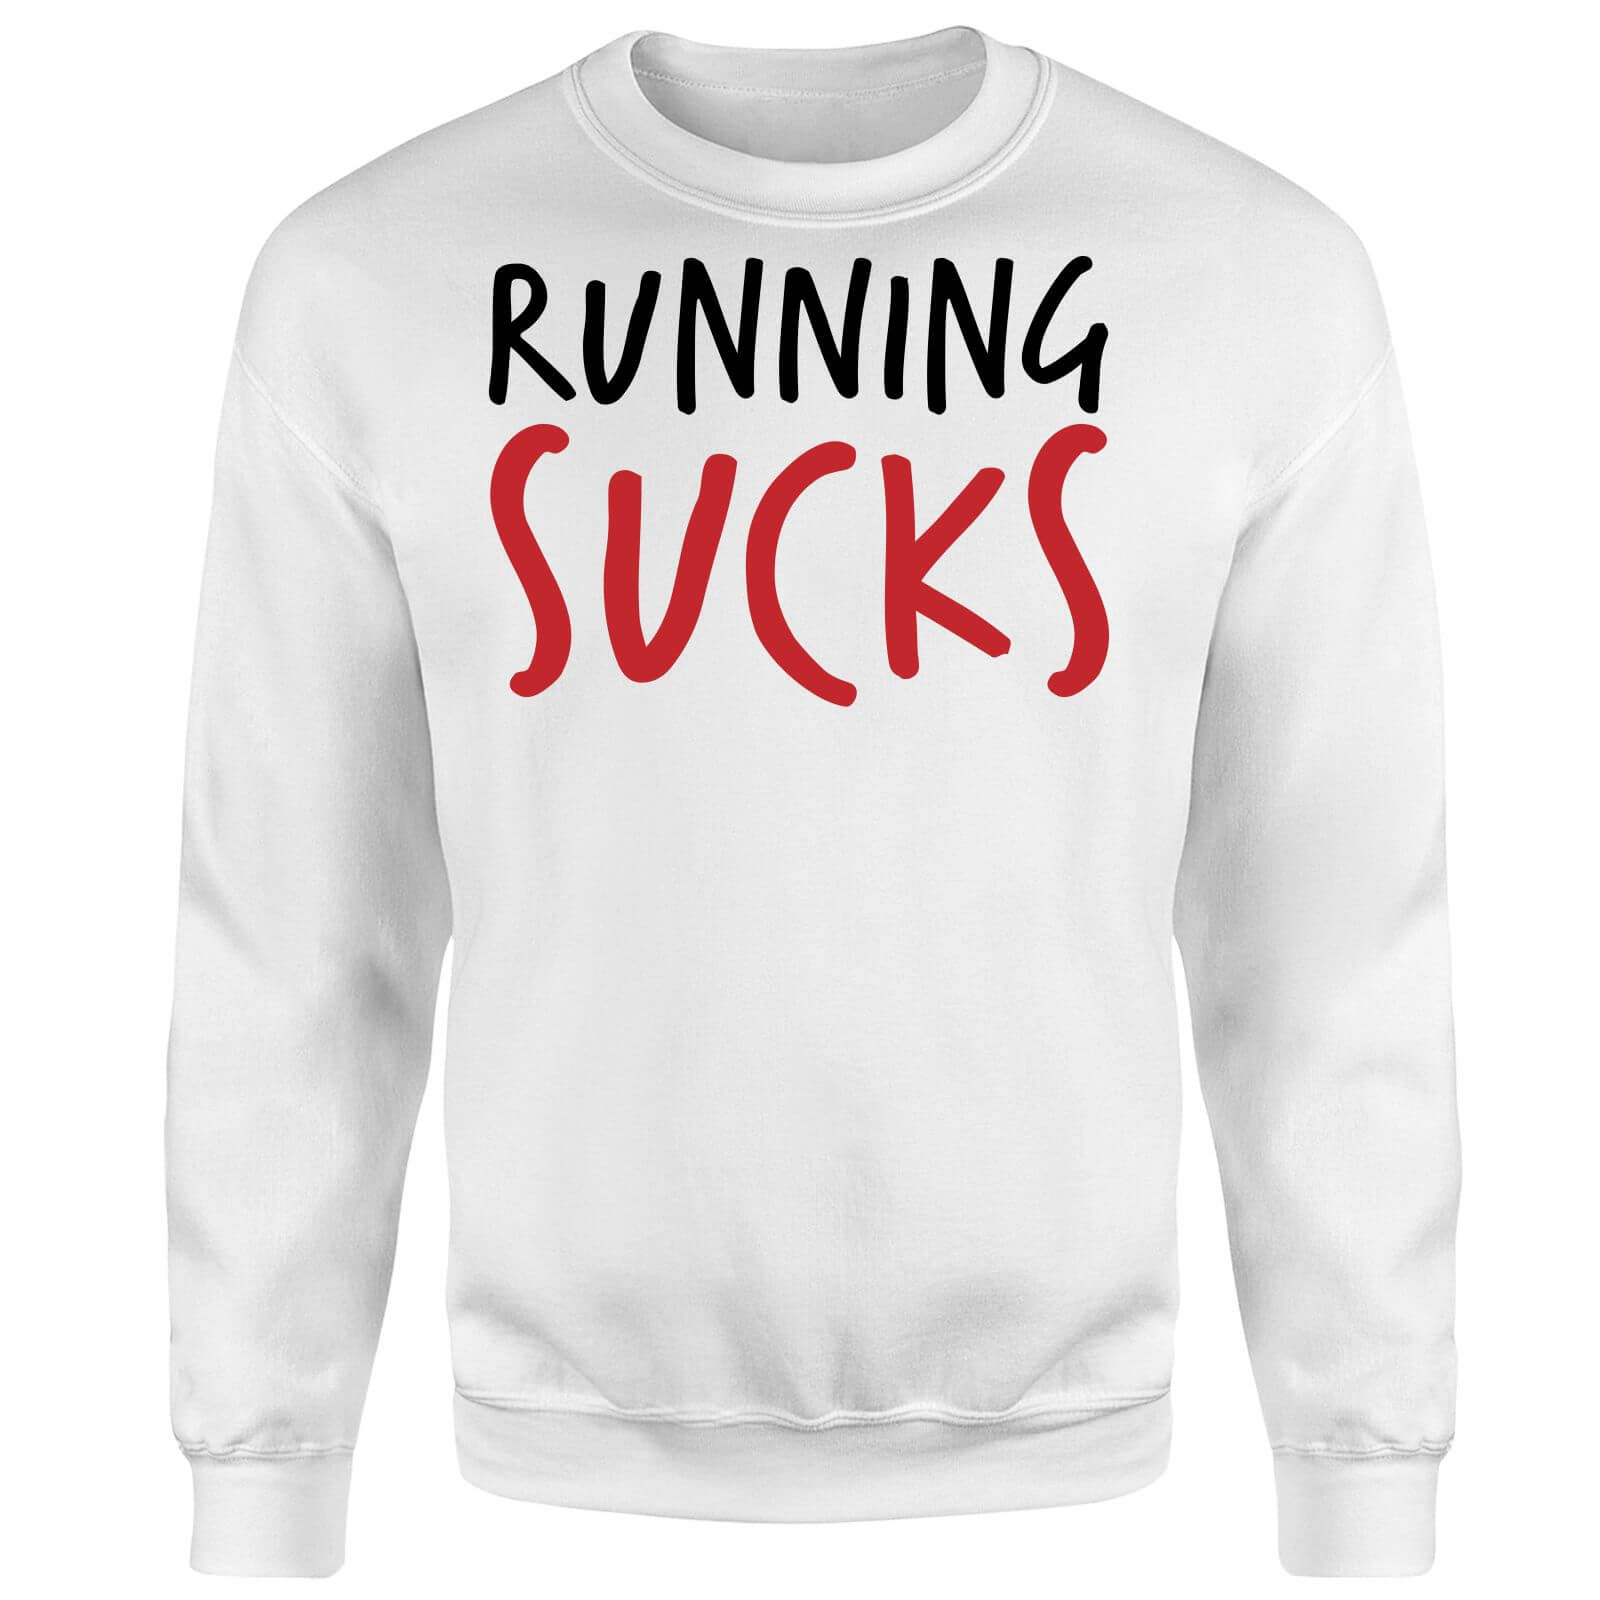 Running Sucks Sweatshirt - White